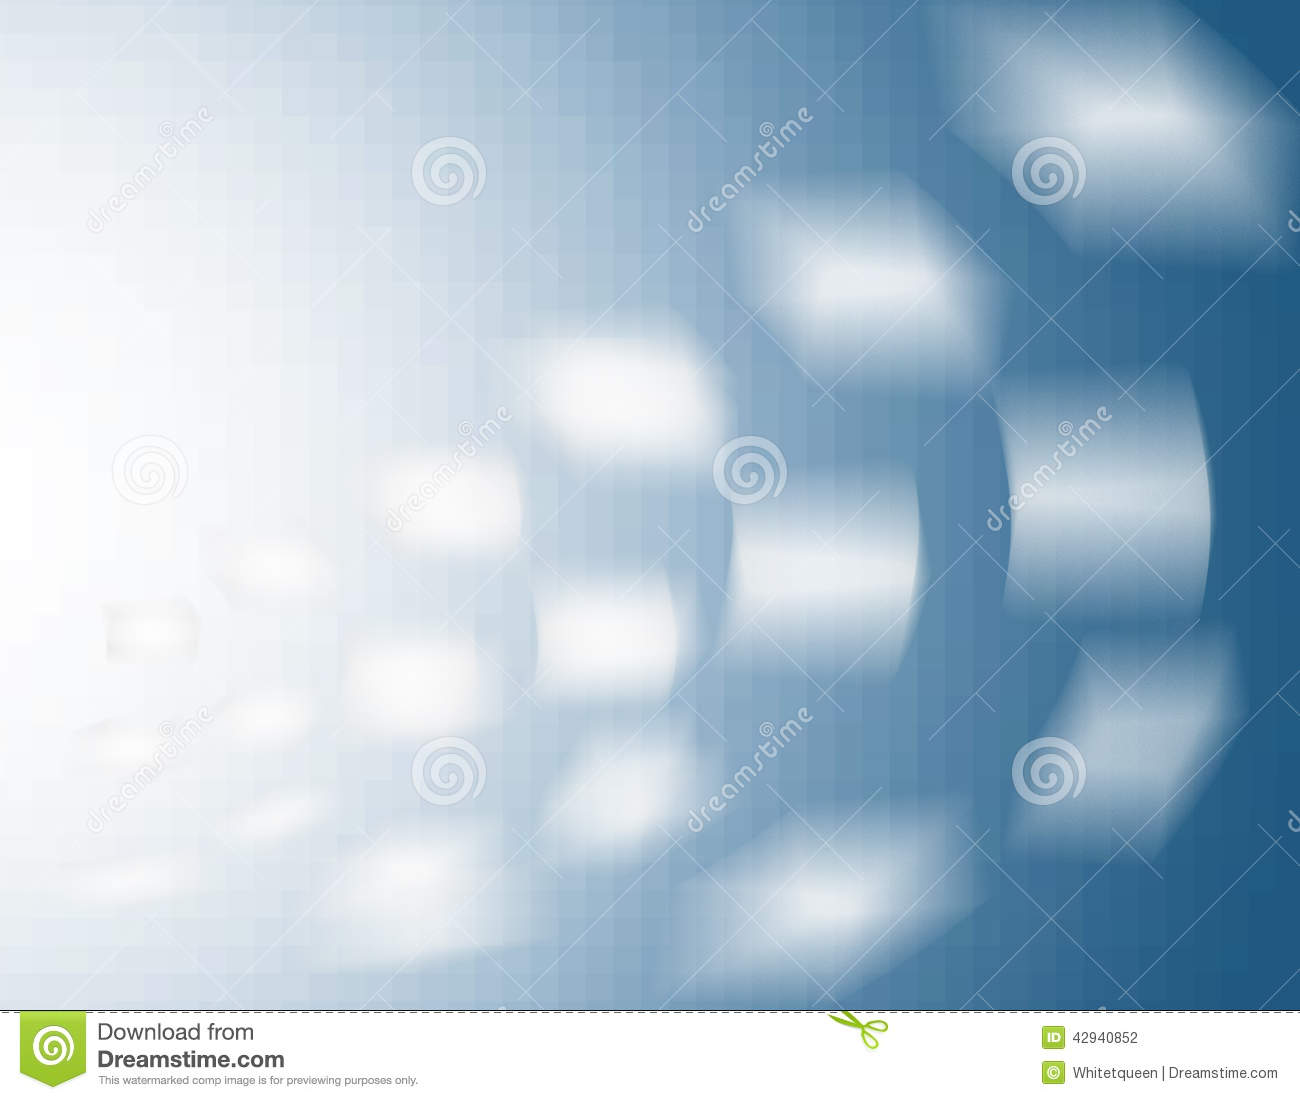 Wallpapers, the background for the website or for display in shades of blue with subtle nuancesand dynamic squares and blur effects.